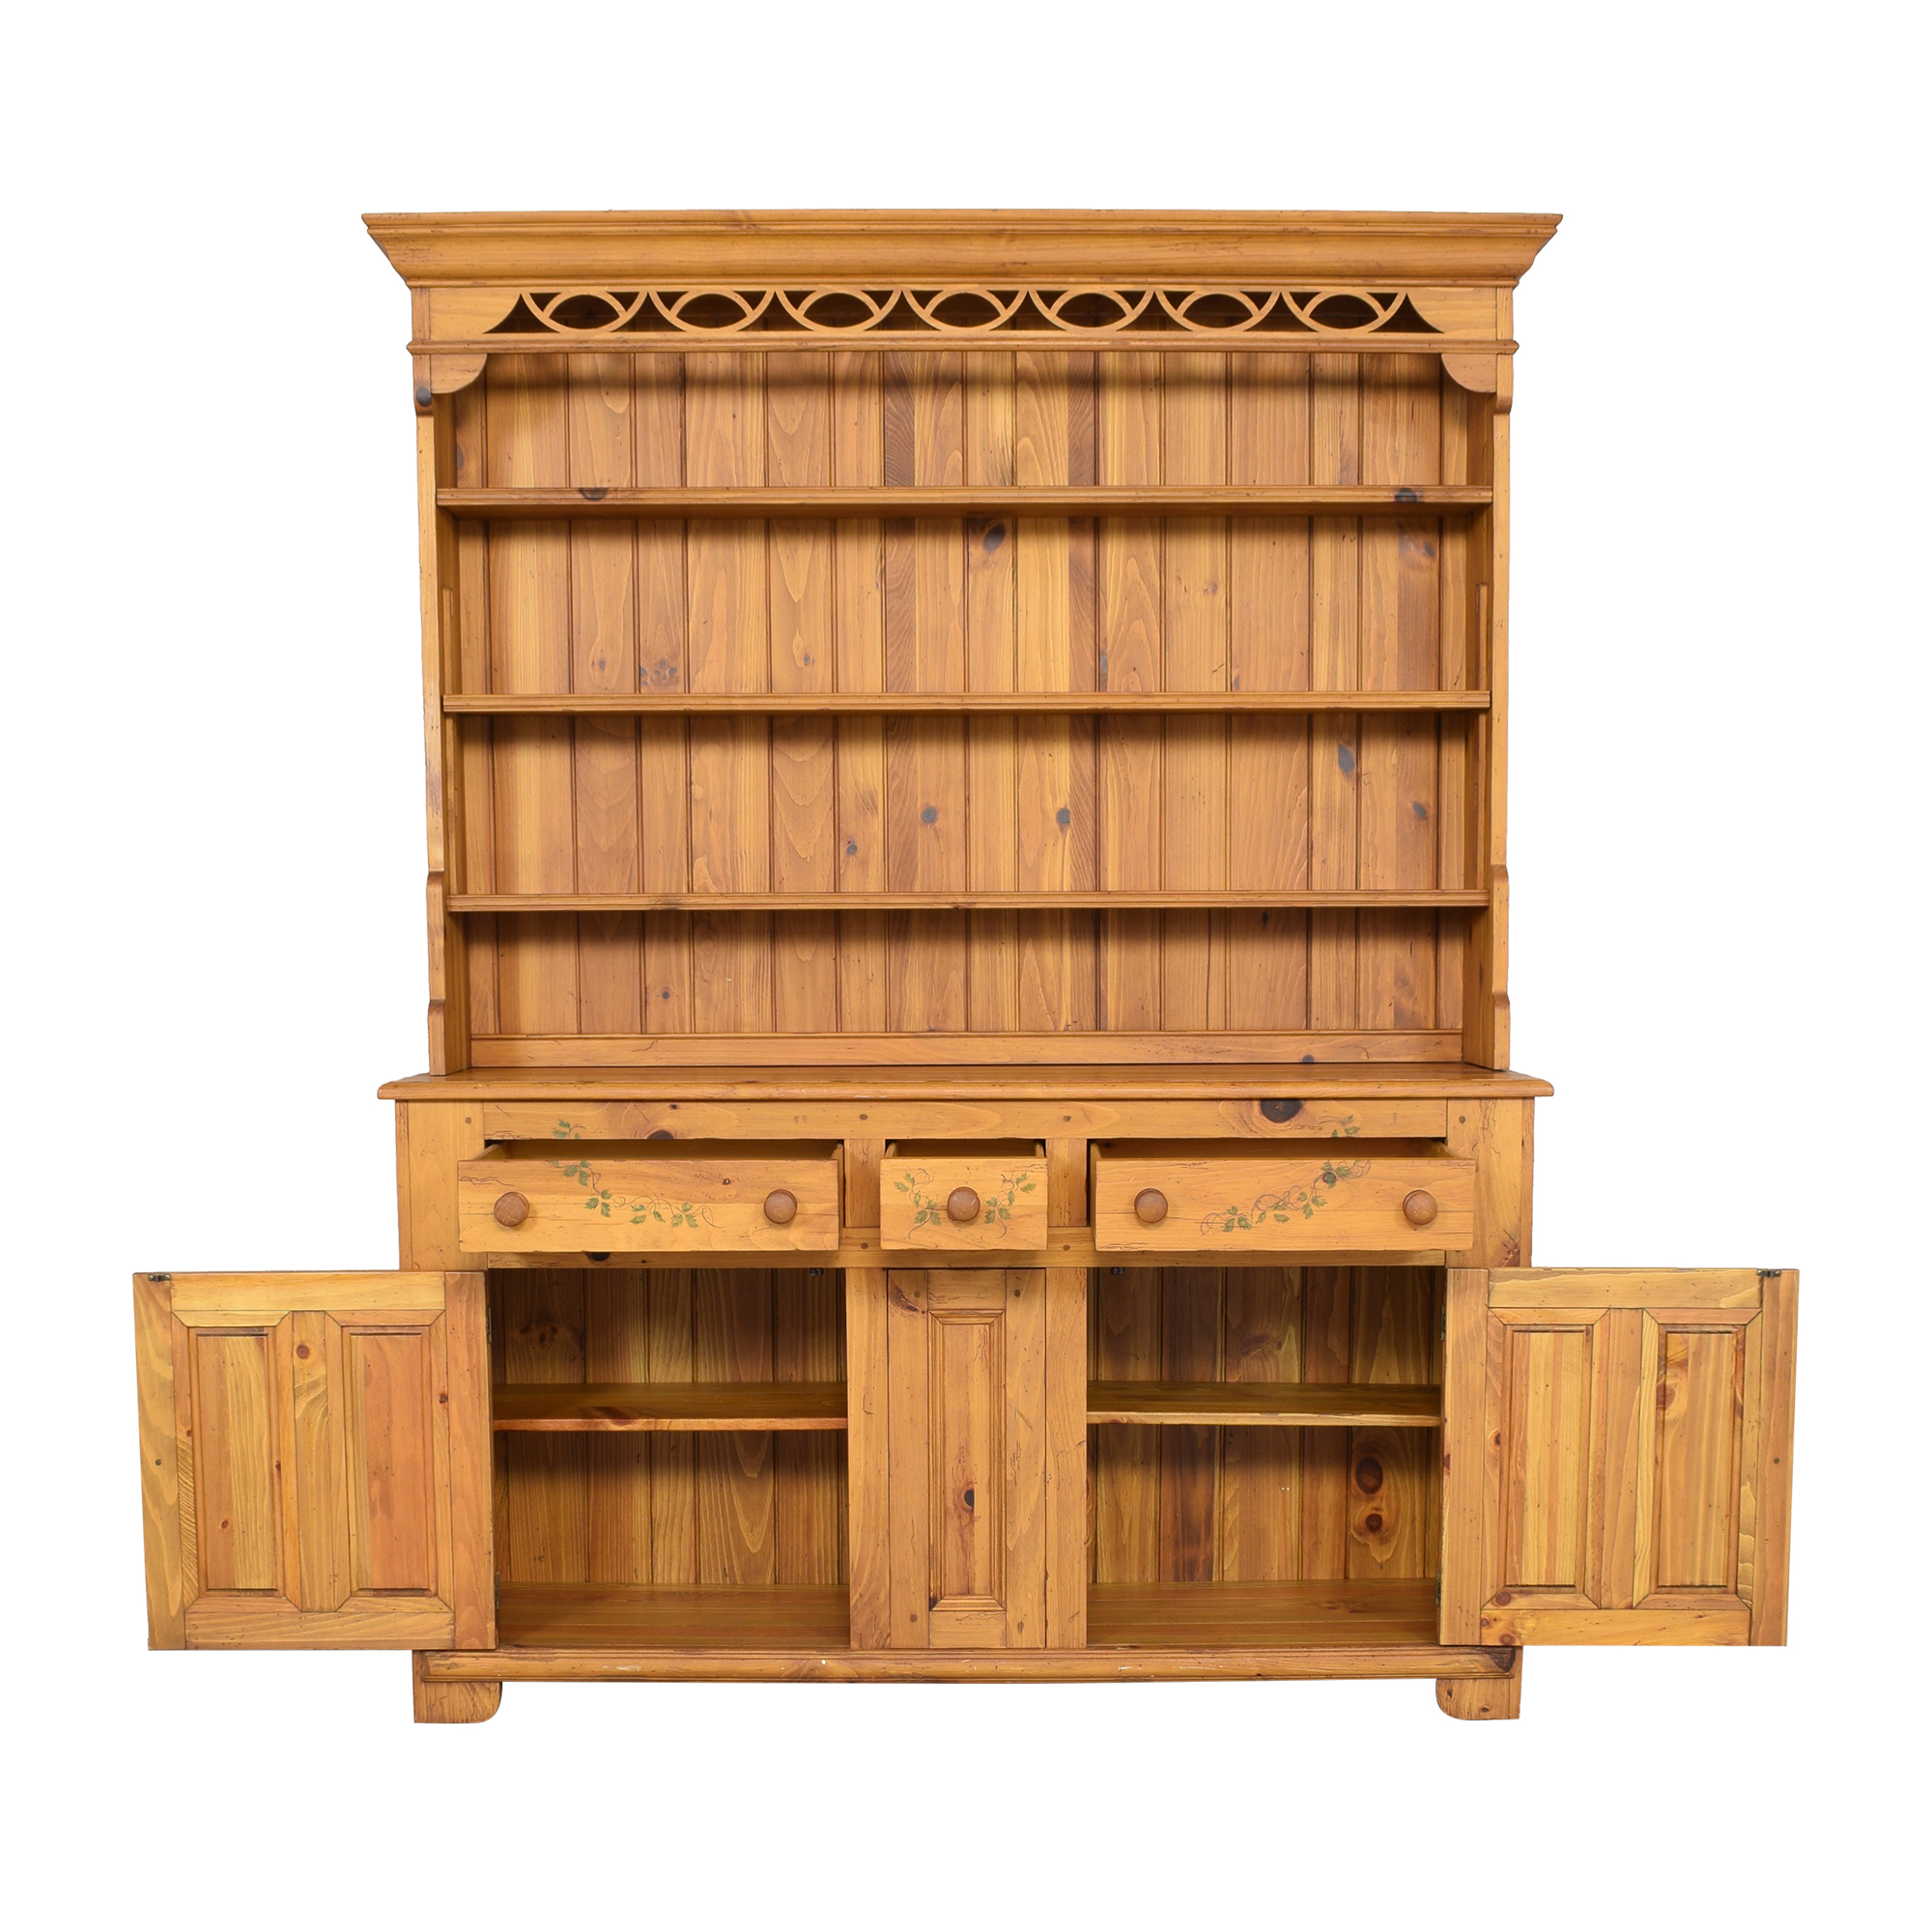 shop Ethan Allen Hutch with Cabinets Ethan Allen Cabinets & Sideboards